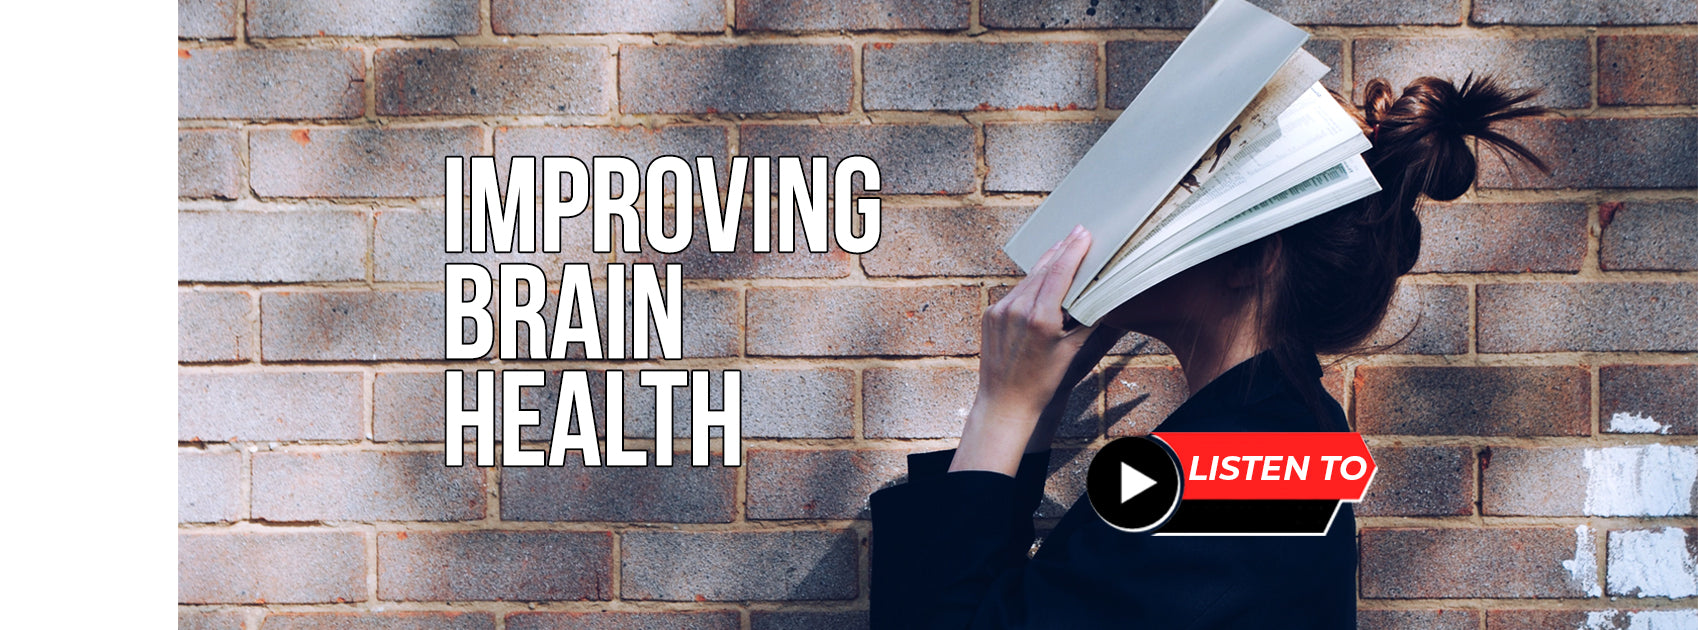 Improving Brain Health